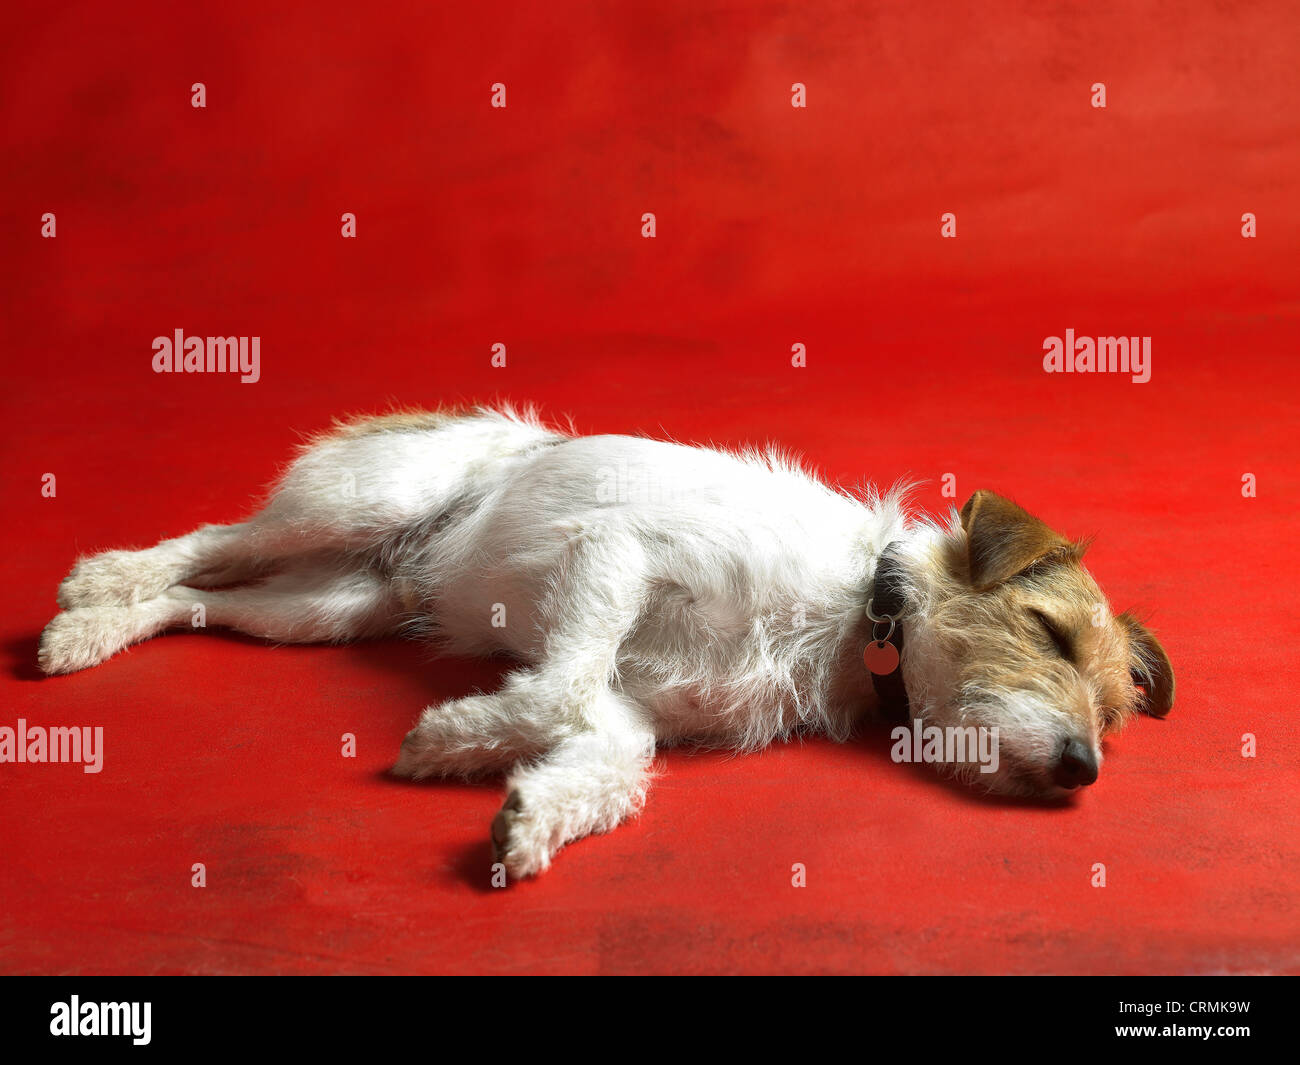 A Parson Russell terrier dog, lying on the floor - Stock Image